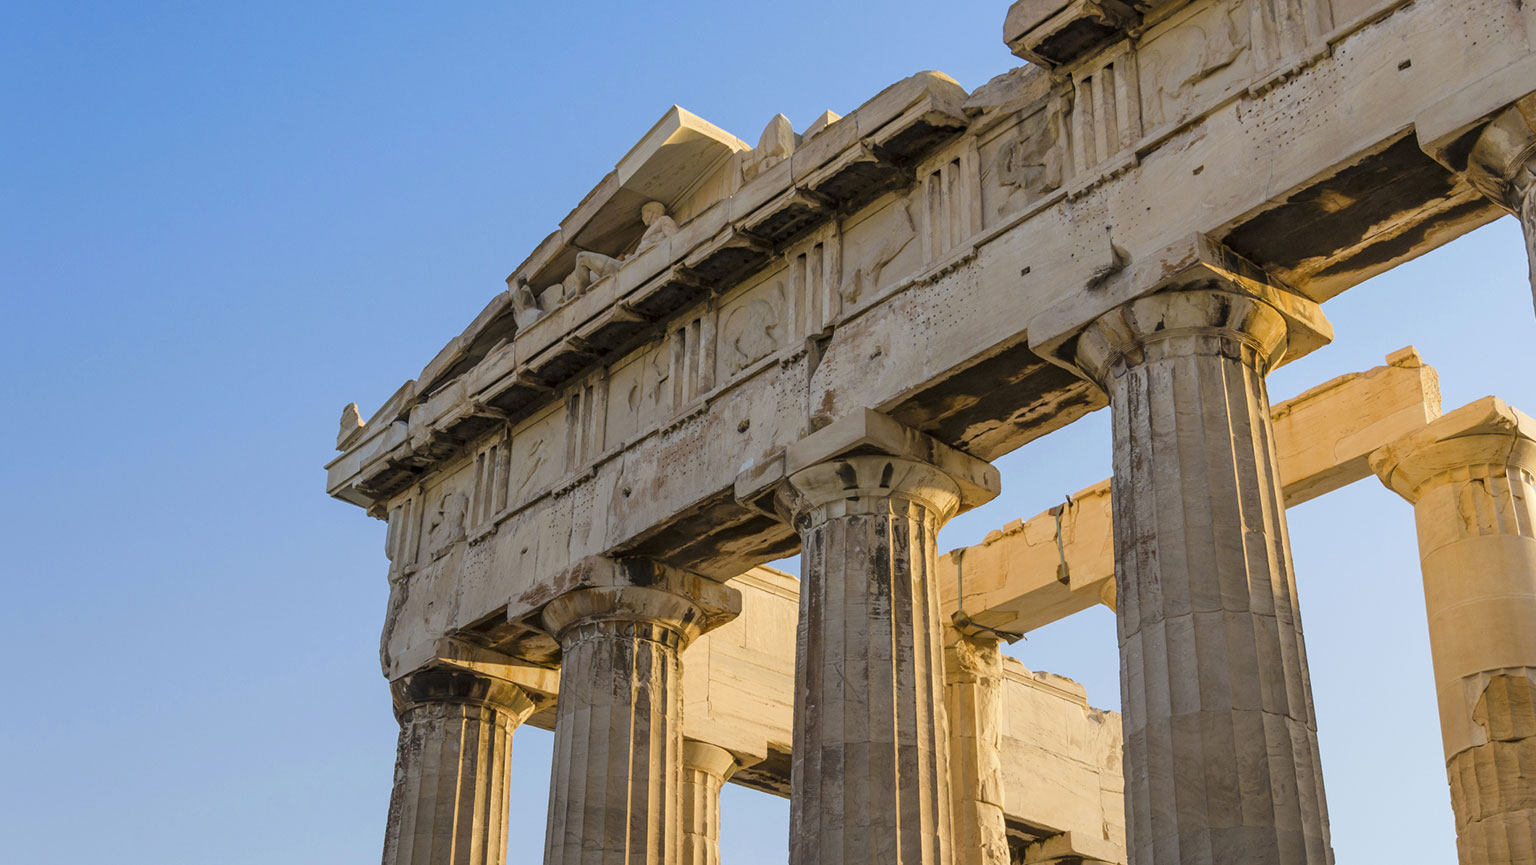 Stone Masonry Perfected—The Greek Temple